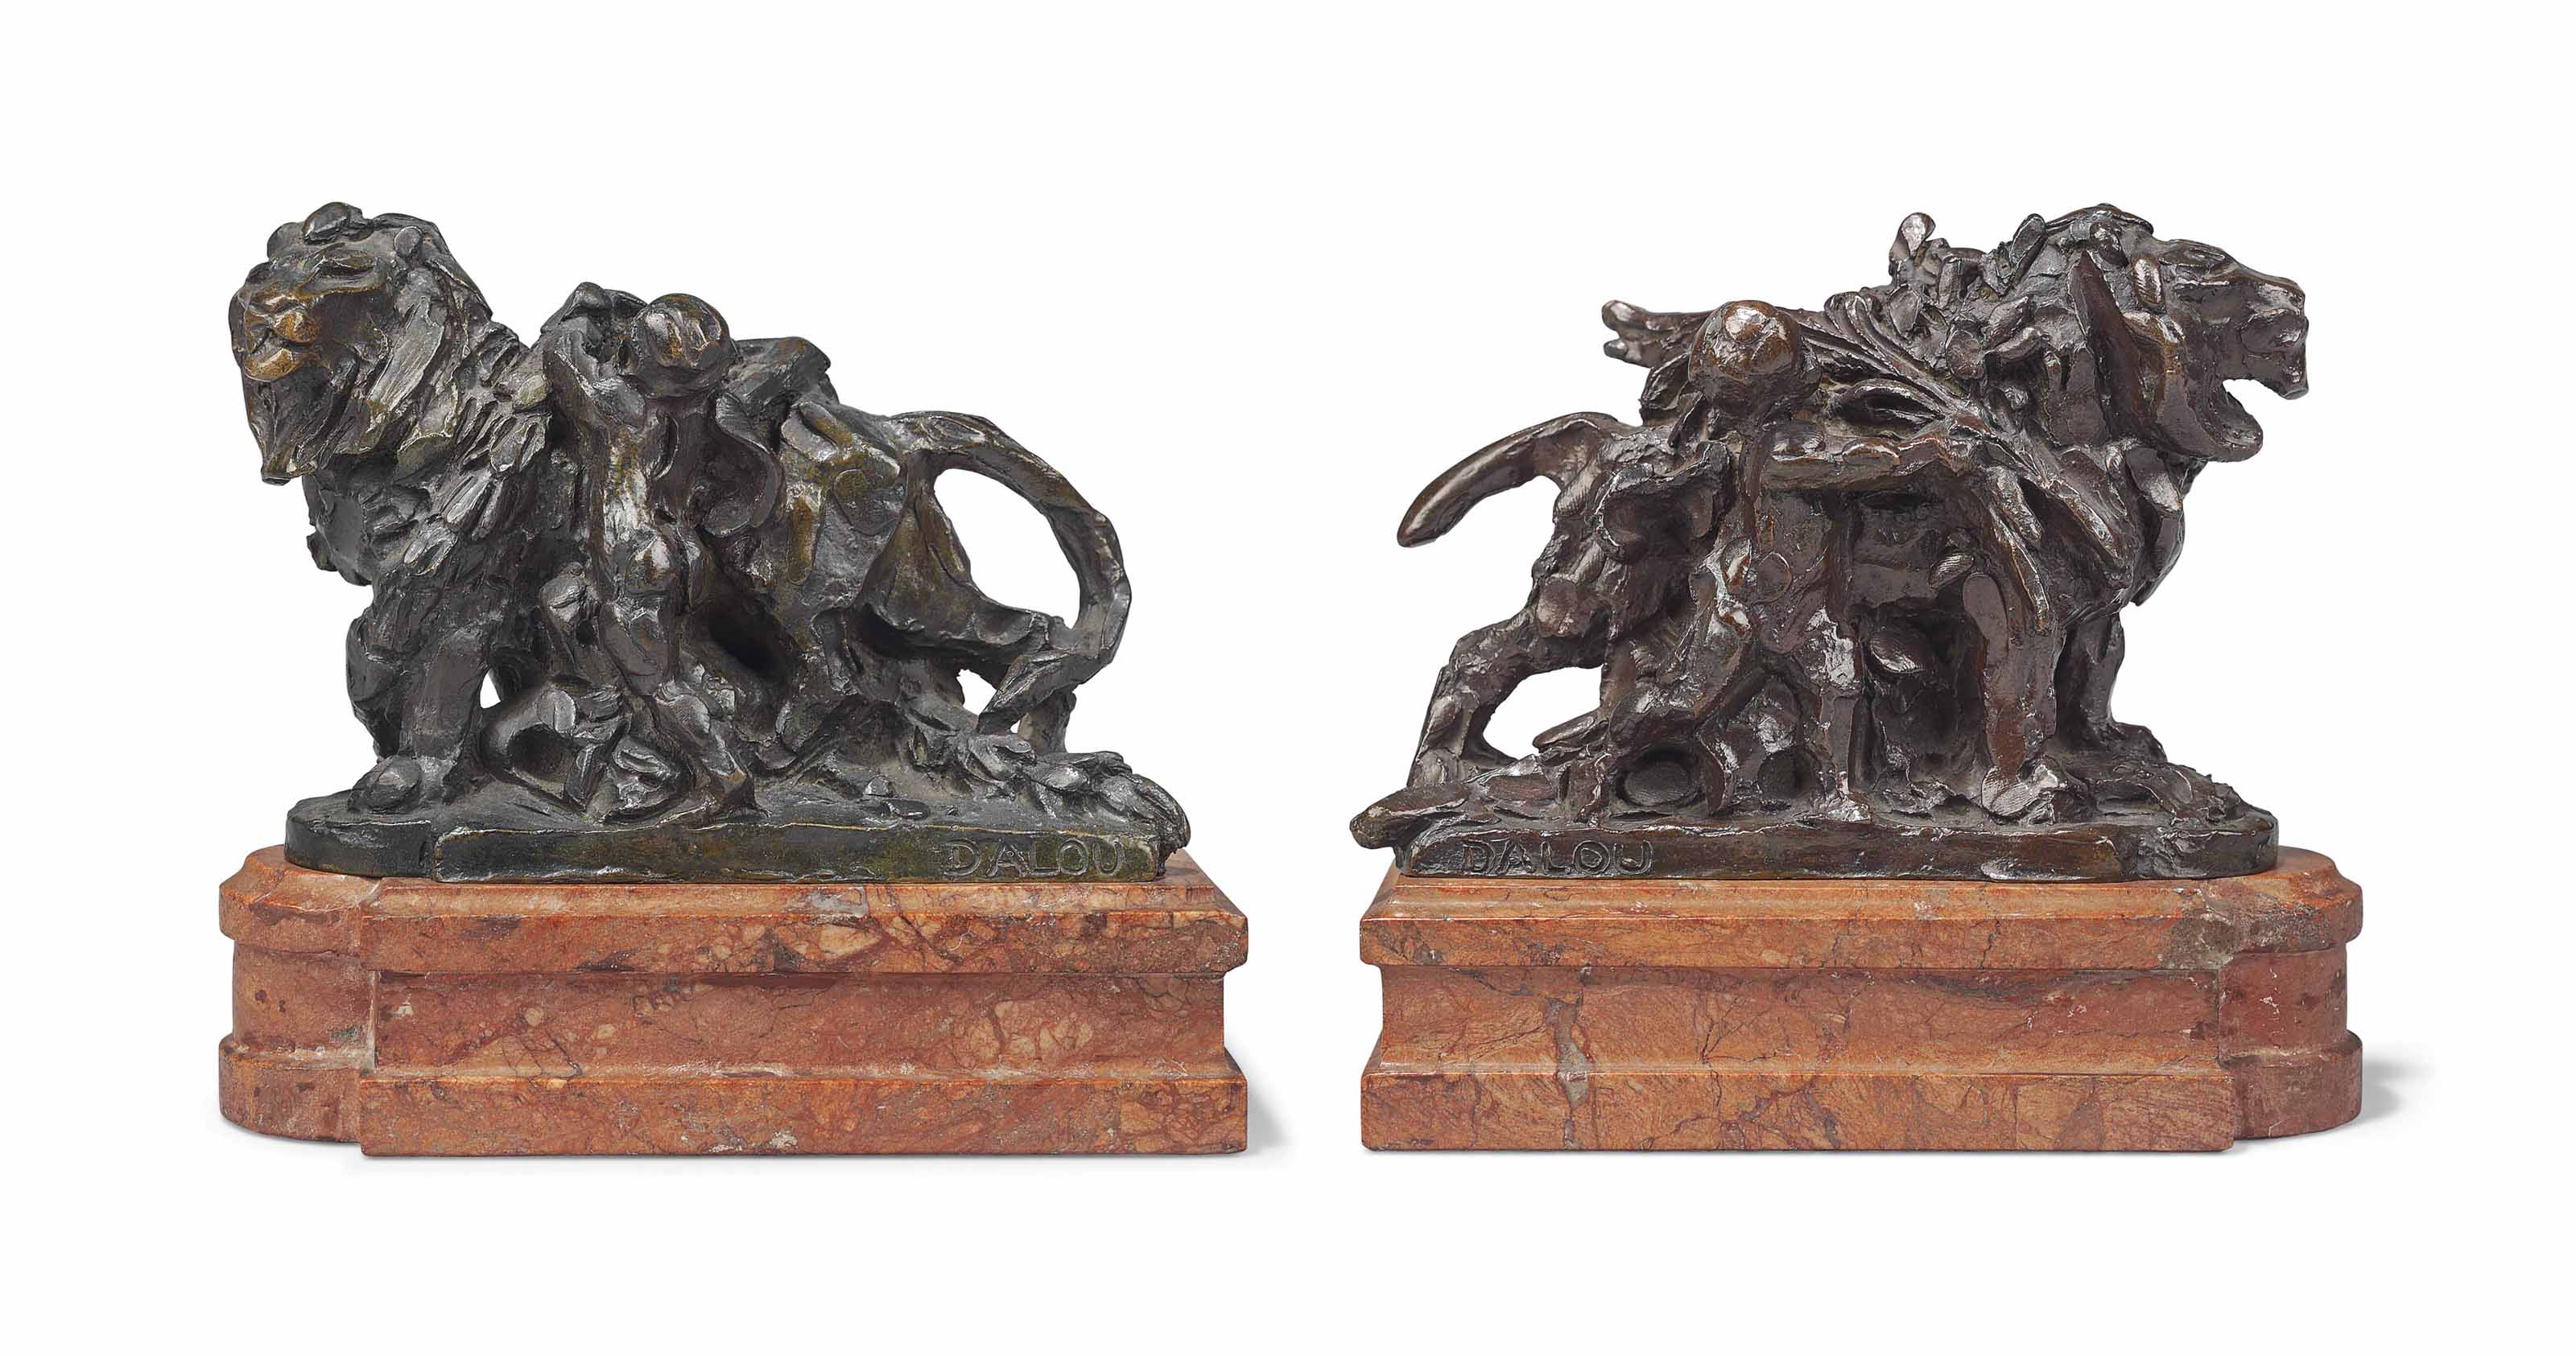 A PAIR OF FRENCH PATINATED-BRONZE GROUPS OF LIONS ENTITLED 'LIONS DU PONT ALEXANDRE III'